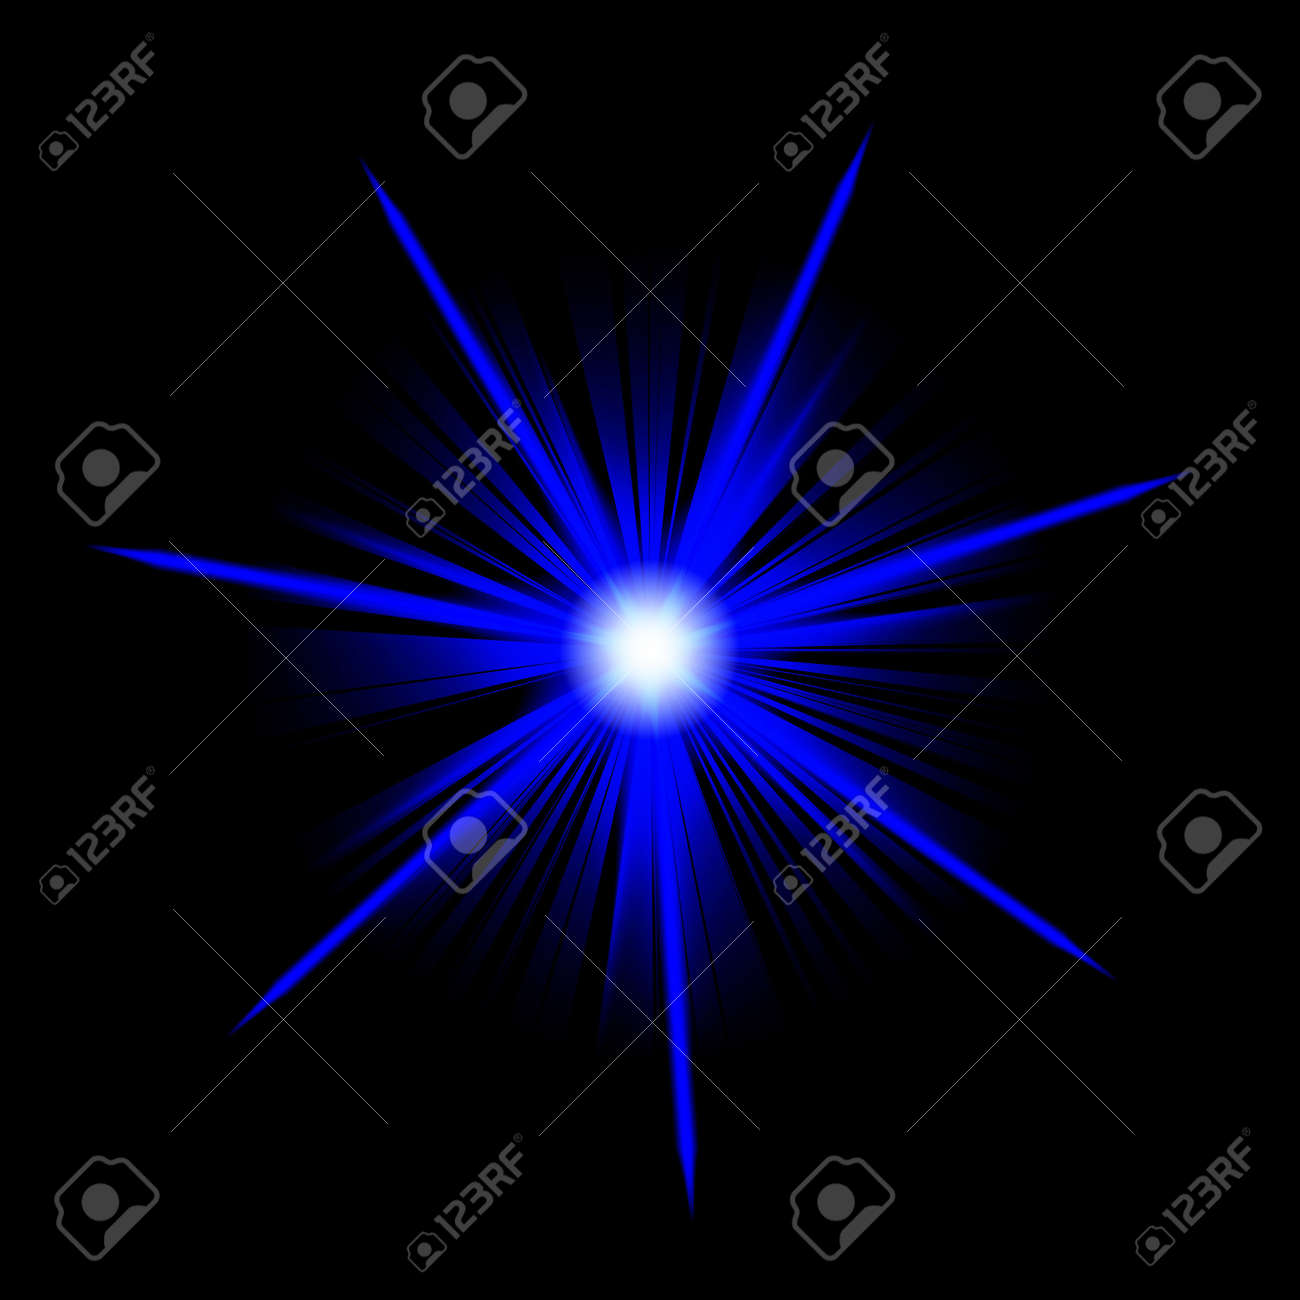 blue star or supernova over black Stock Photo - 3807861